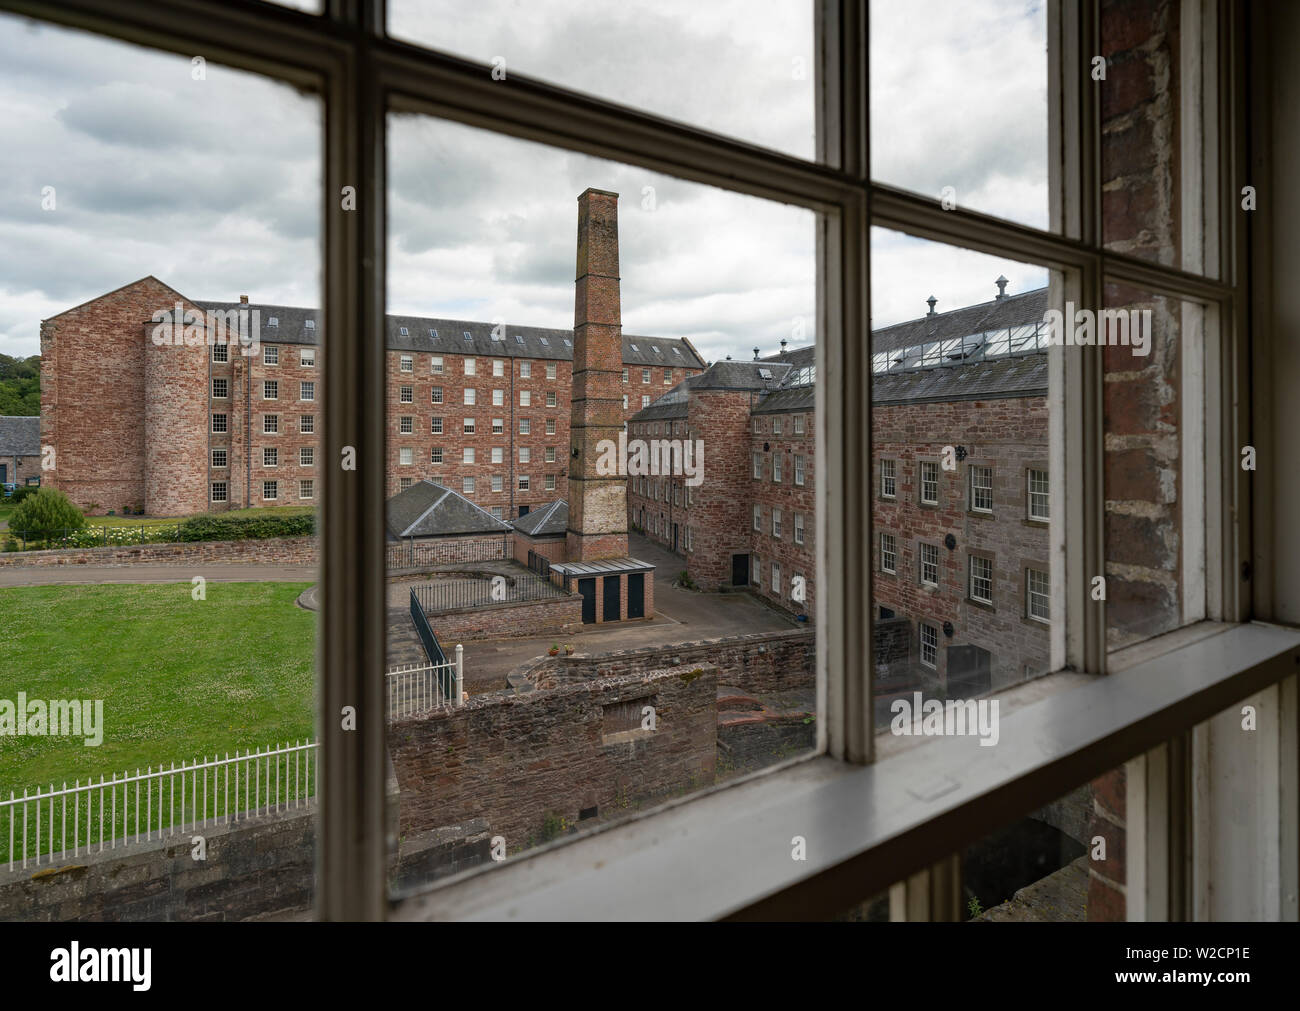 View of historic preserved Stanley Mills  former cotton mills factory in Stanley, Perthshire, Scotland, UK - Stock Image